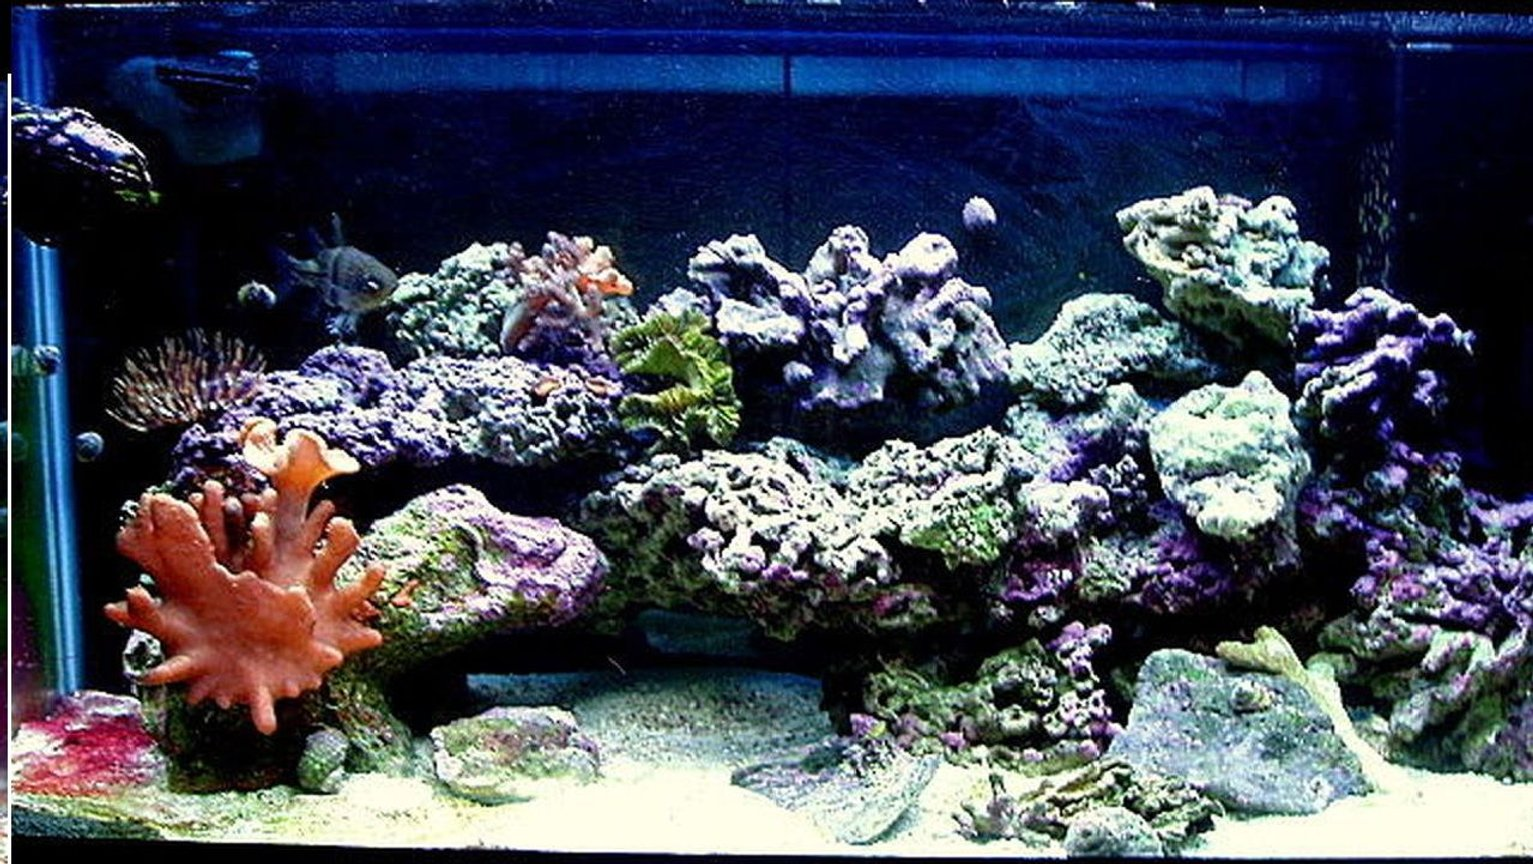 30 gallons reef tank (mostly live coral and fish) - My first tank ever, fallowed everything I've read, build my own sump, and so far everything is healthy as can be!